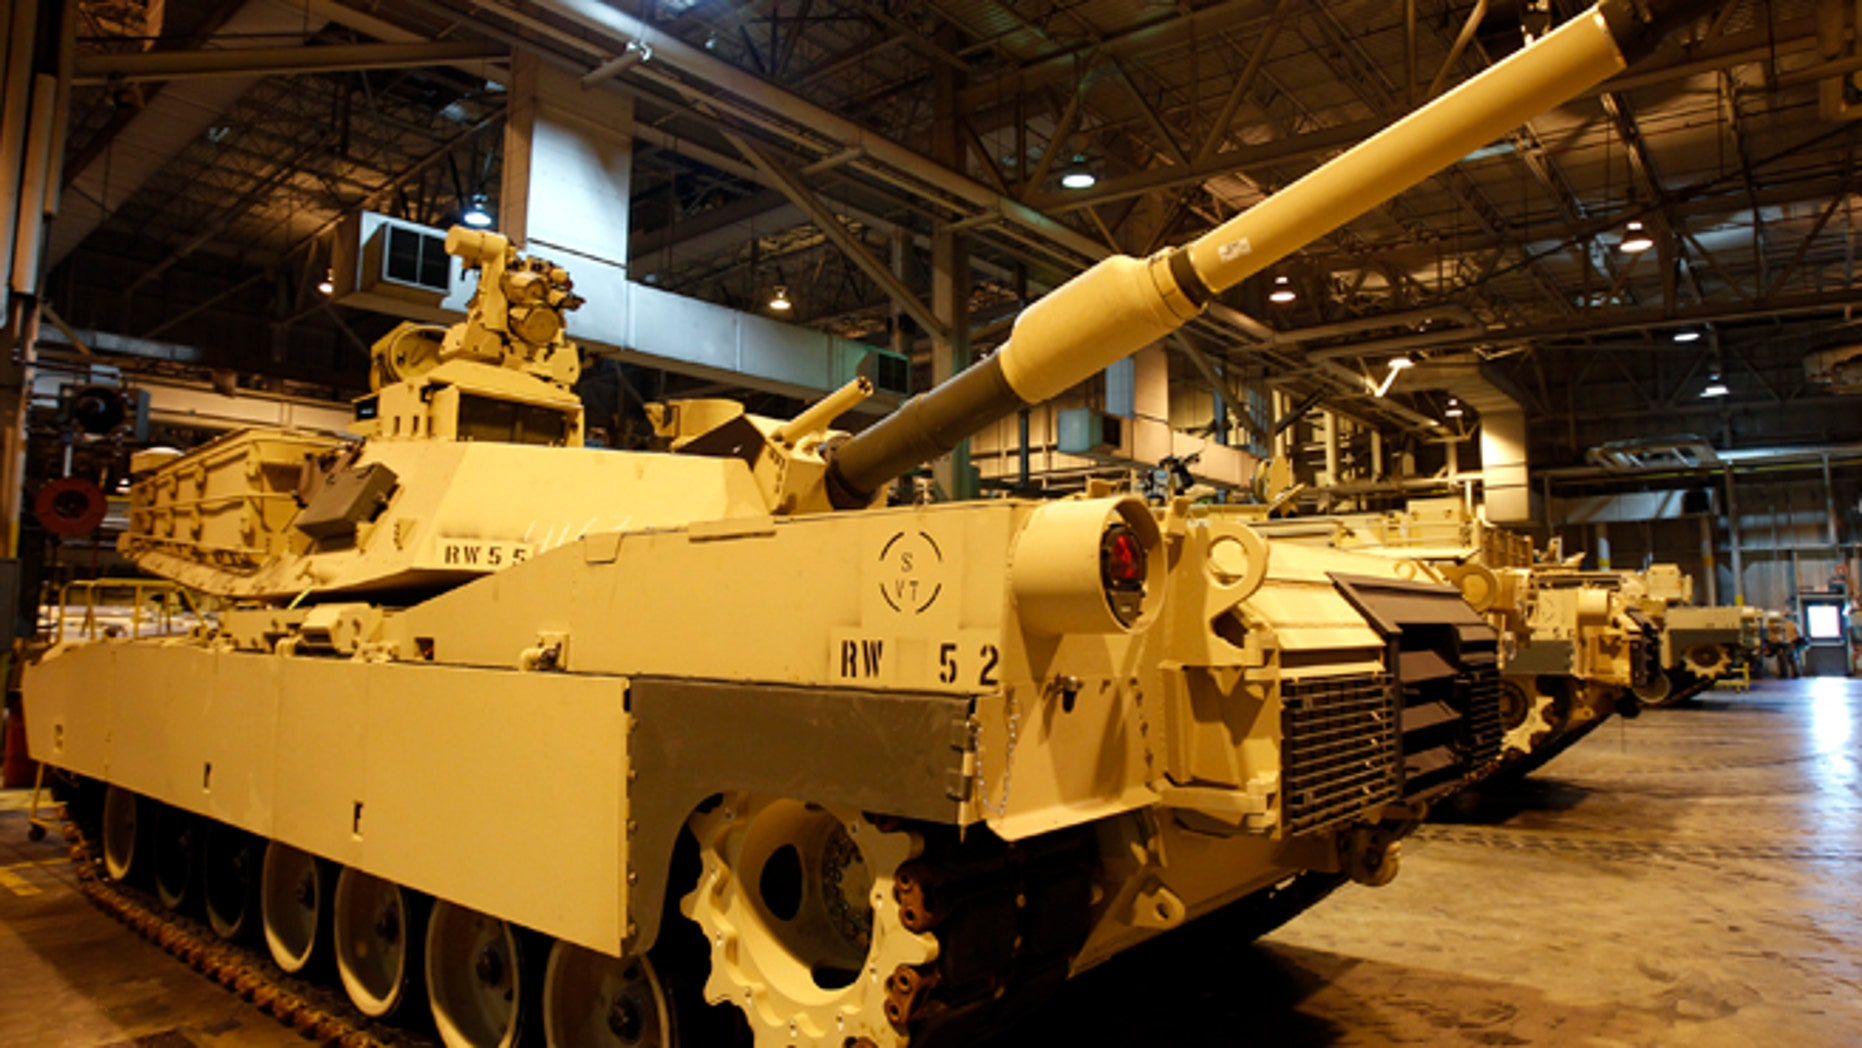 FILE: April 23, 2012: An Abrams battle tank during a tour of the Joint Systems Manufacturing Center, Lima Army Tank Plant, in Lima, Ohio.